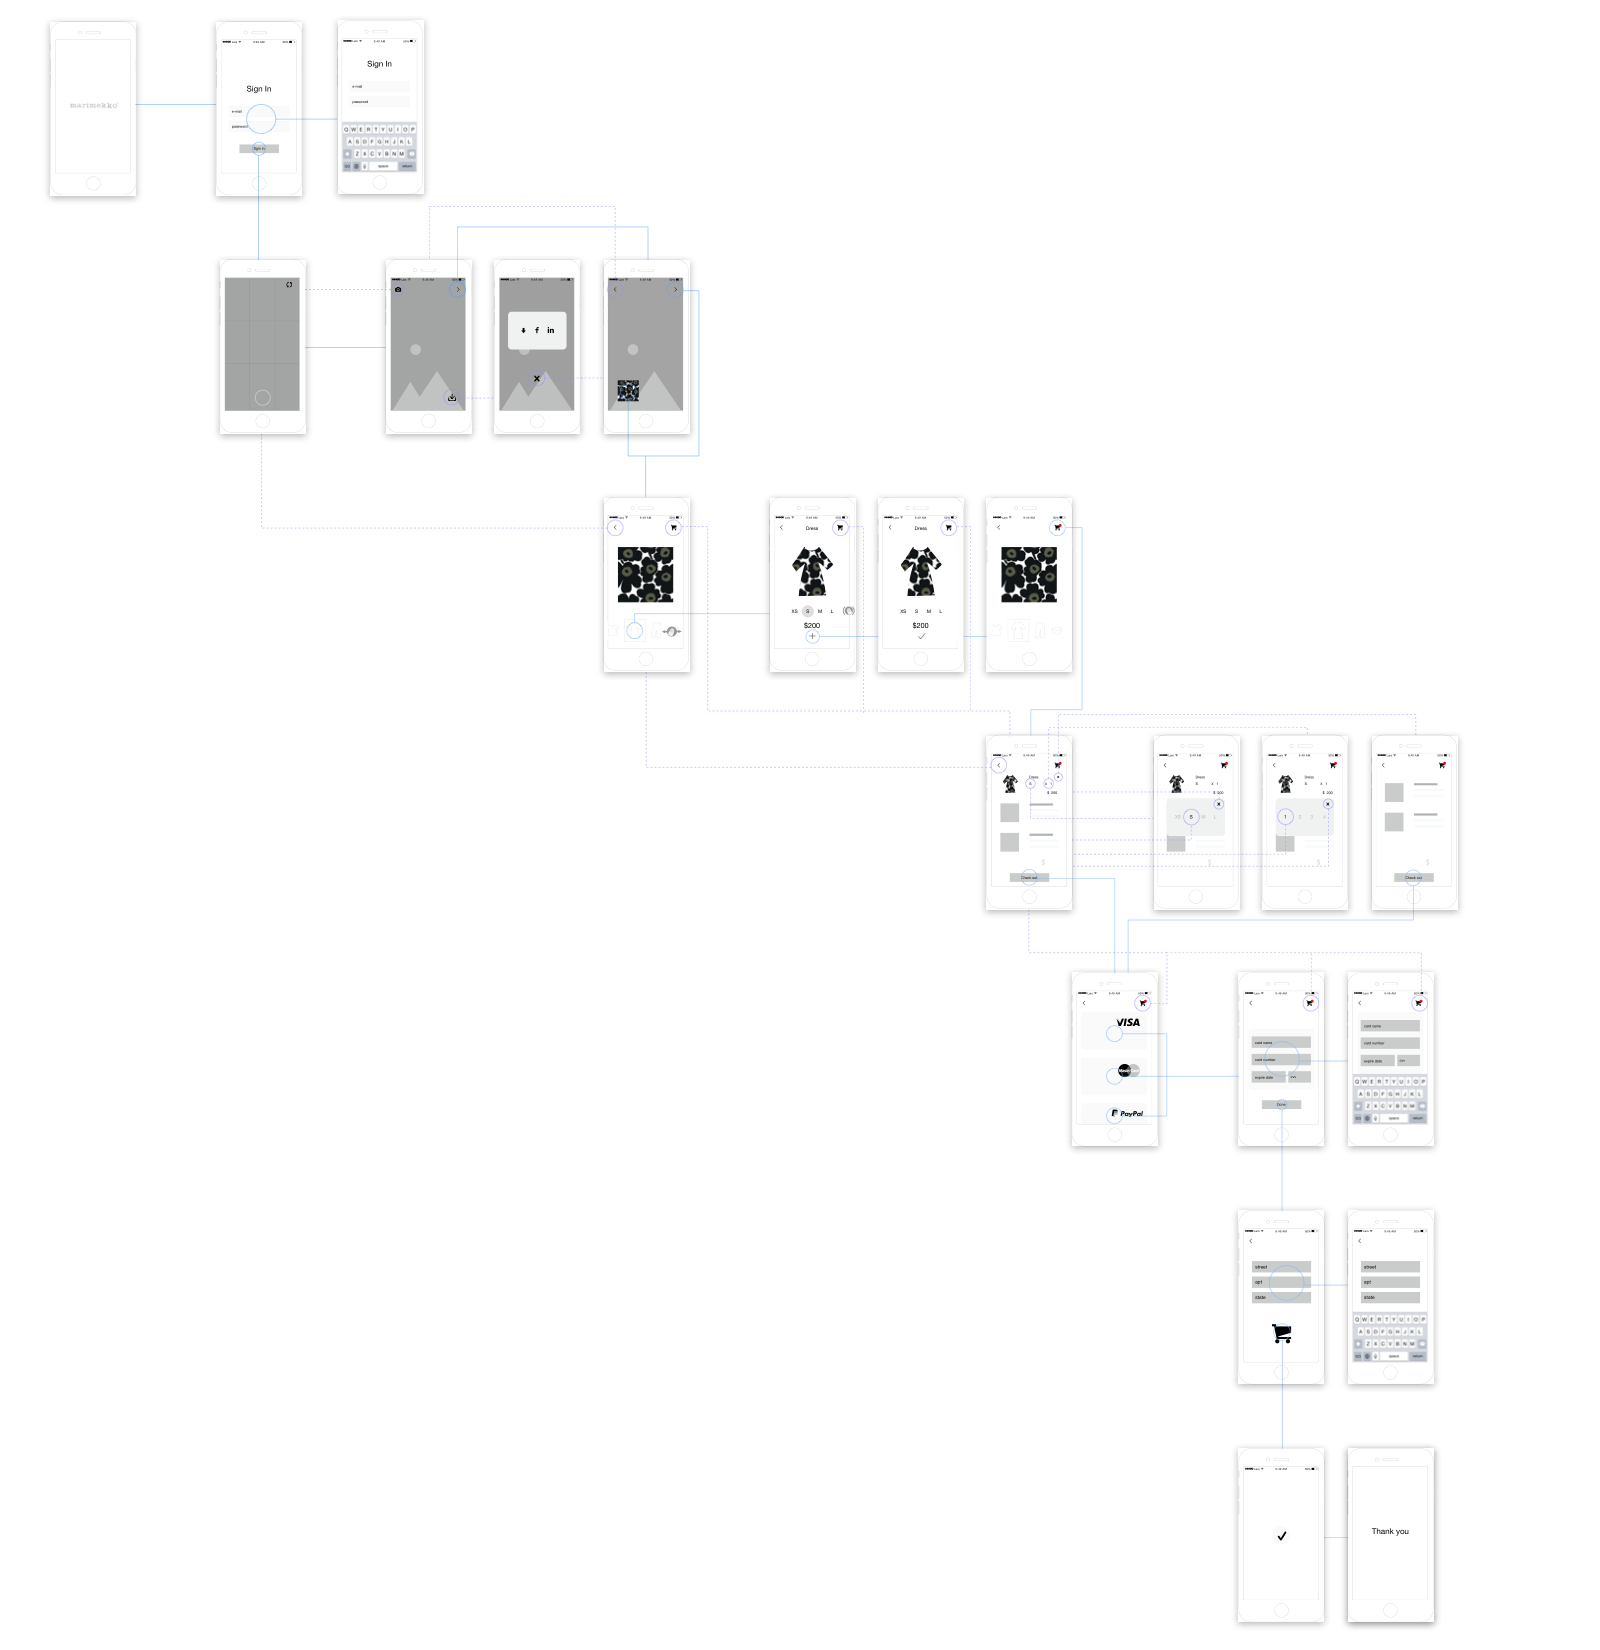 patternRoomWireframe.png